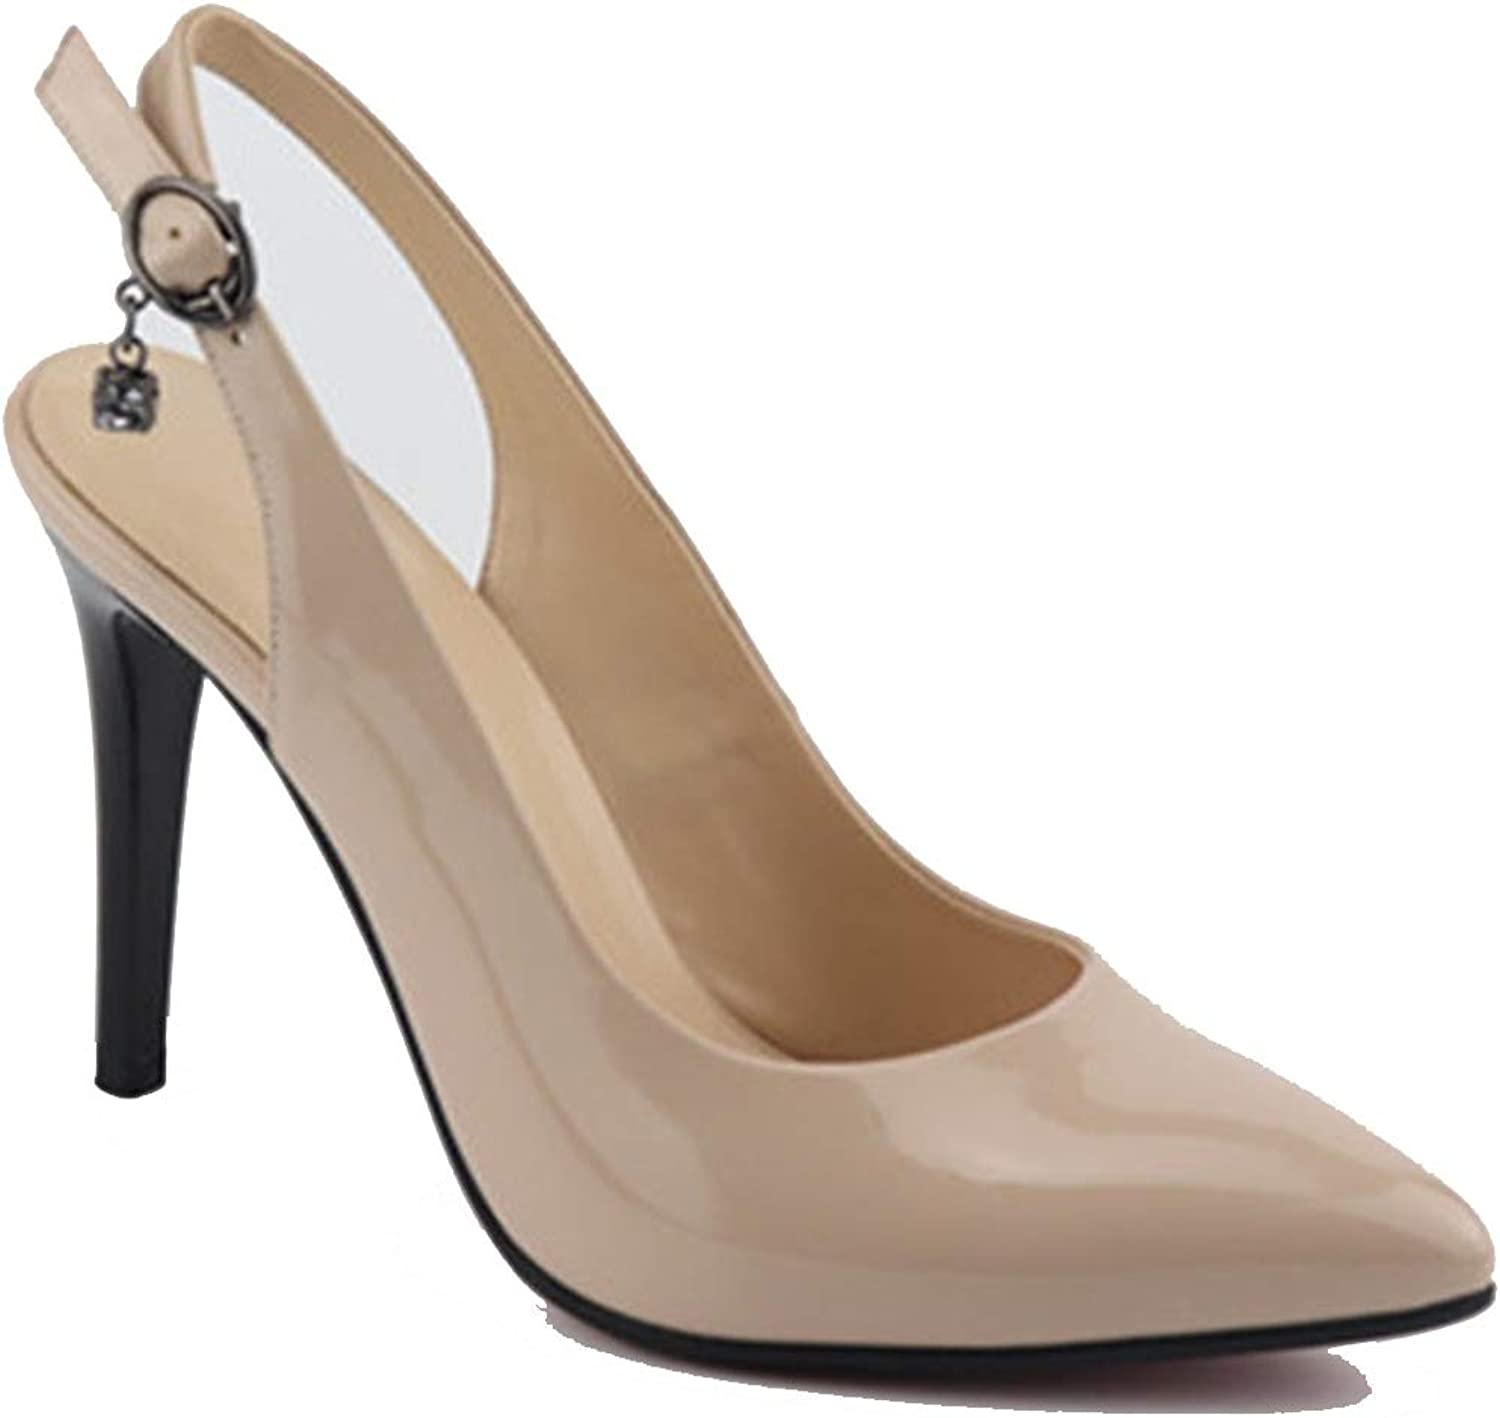 Women Pumps Pointed Toe Summer Slingback shoes Buckle Sexy Super high Heels shoes Woman,Apricot,11